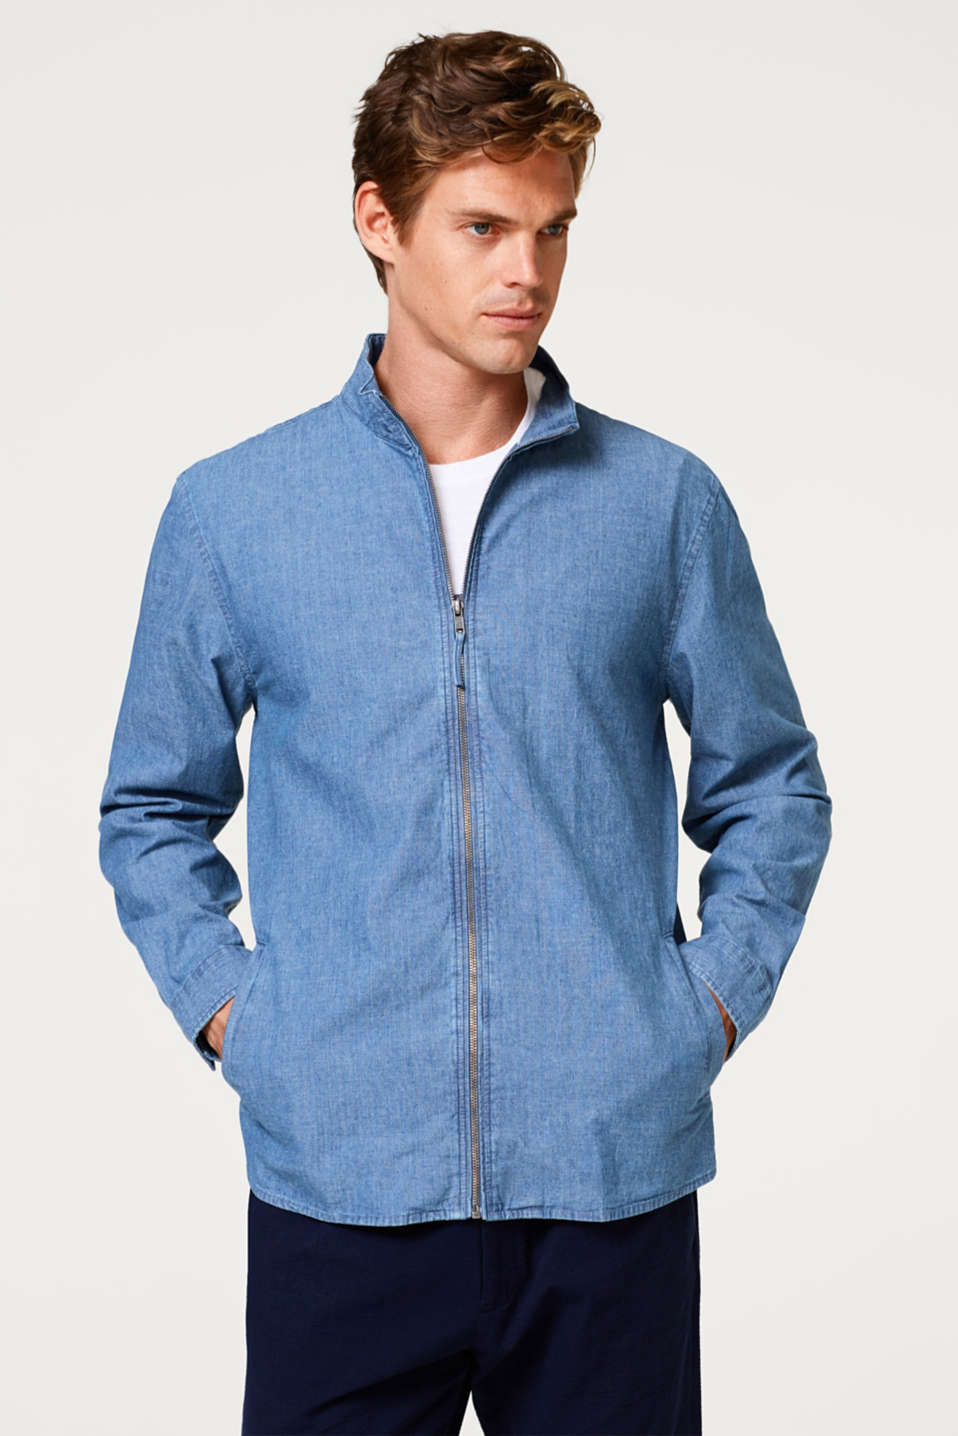 Esprit - Denim overshirt in 100% cotton